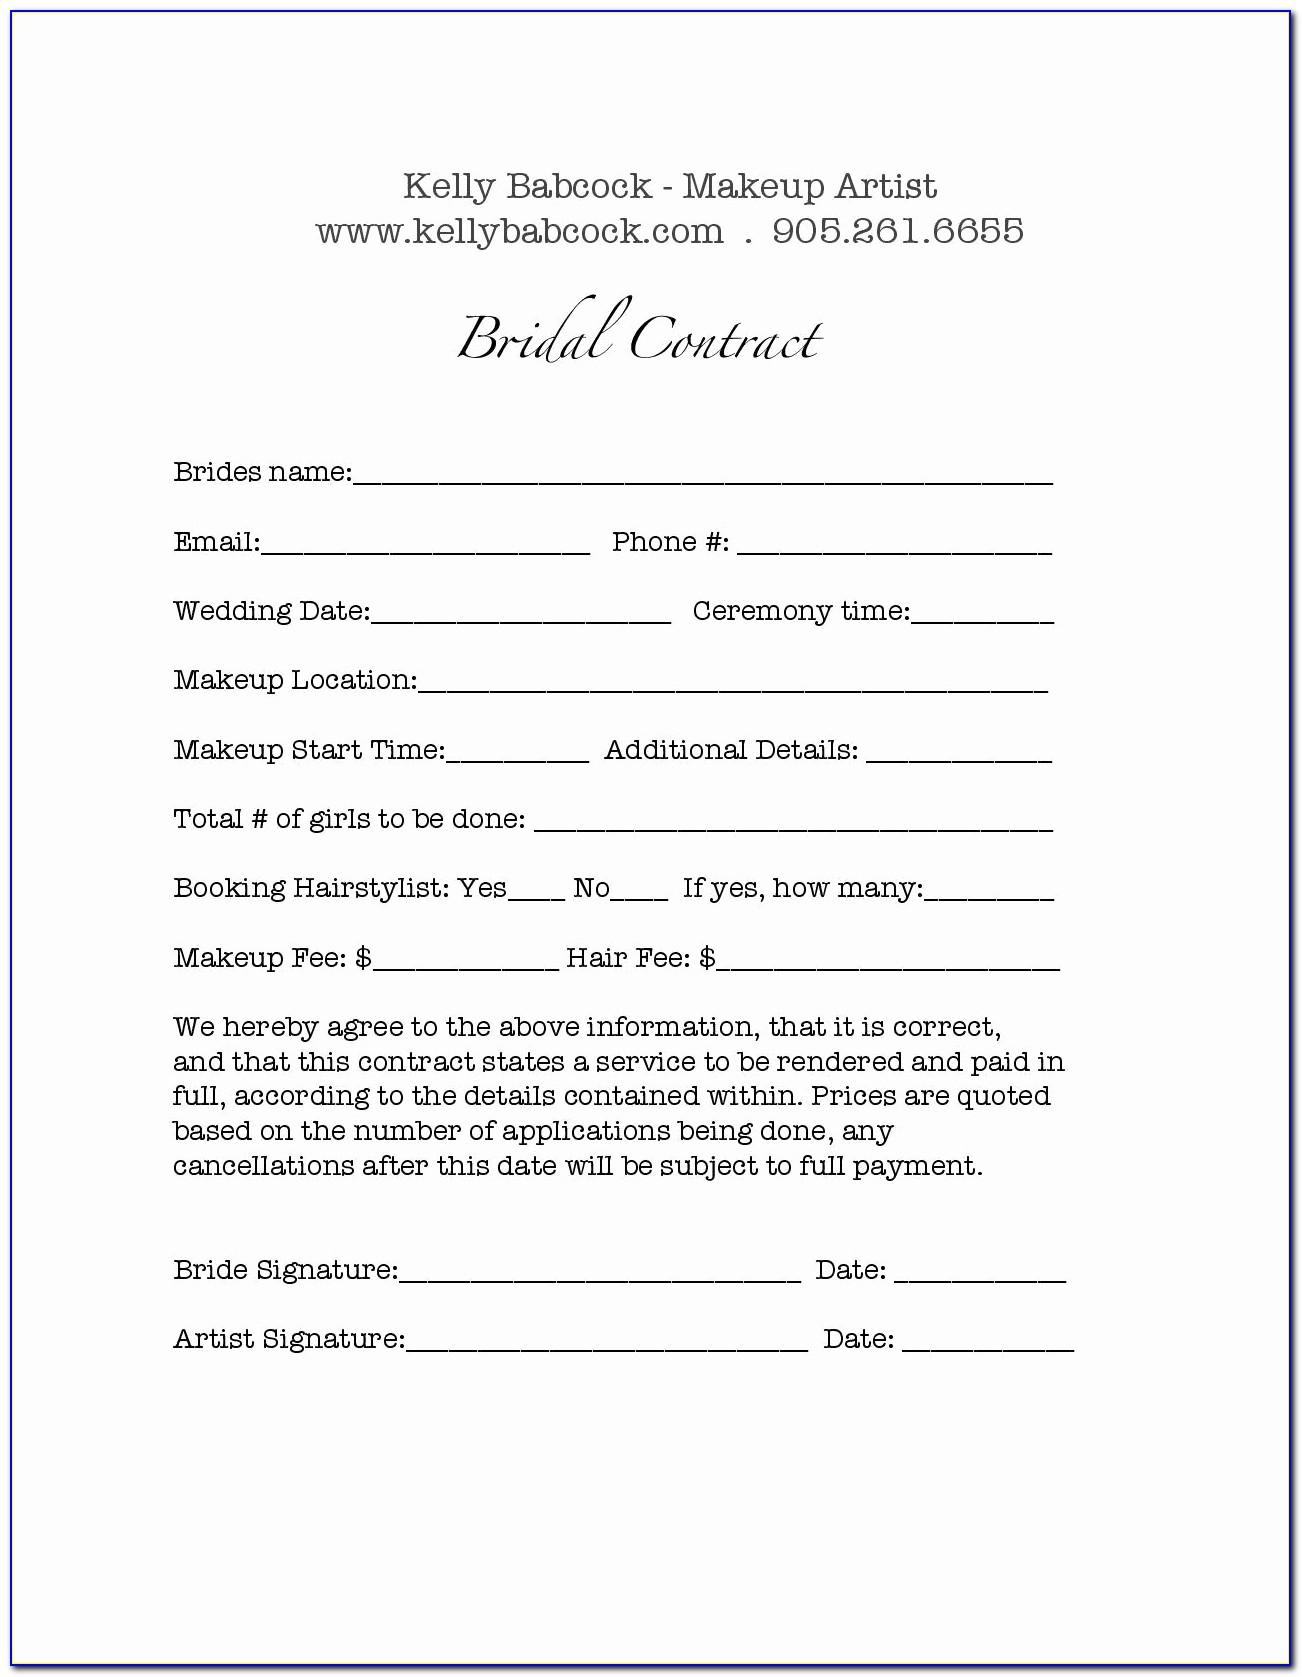 Bridal Makeup Contract Examples